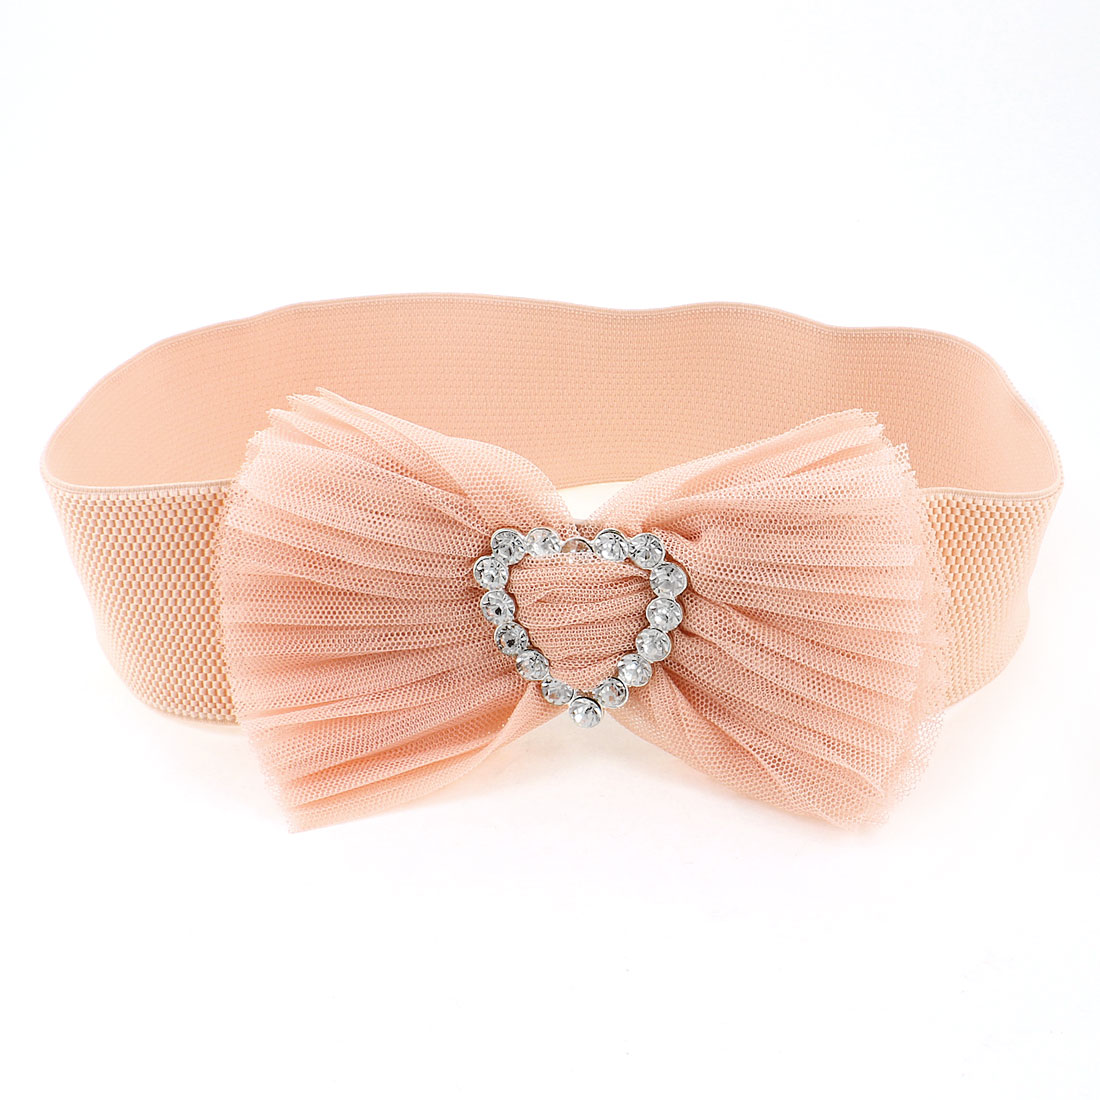 Ladies Faux Crystal Press Stud Buckle Pink Stretch Cinch Wide High Waist Belt